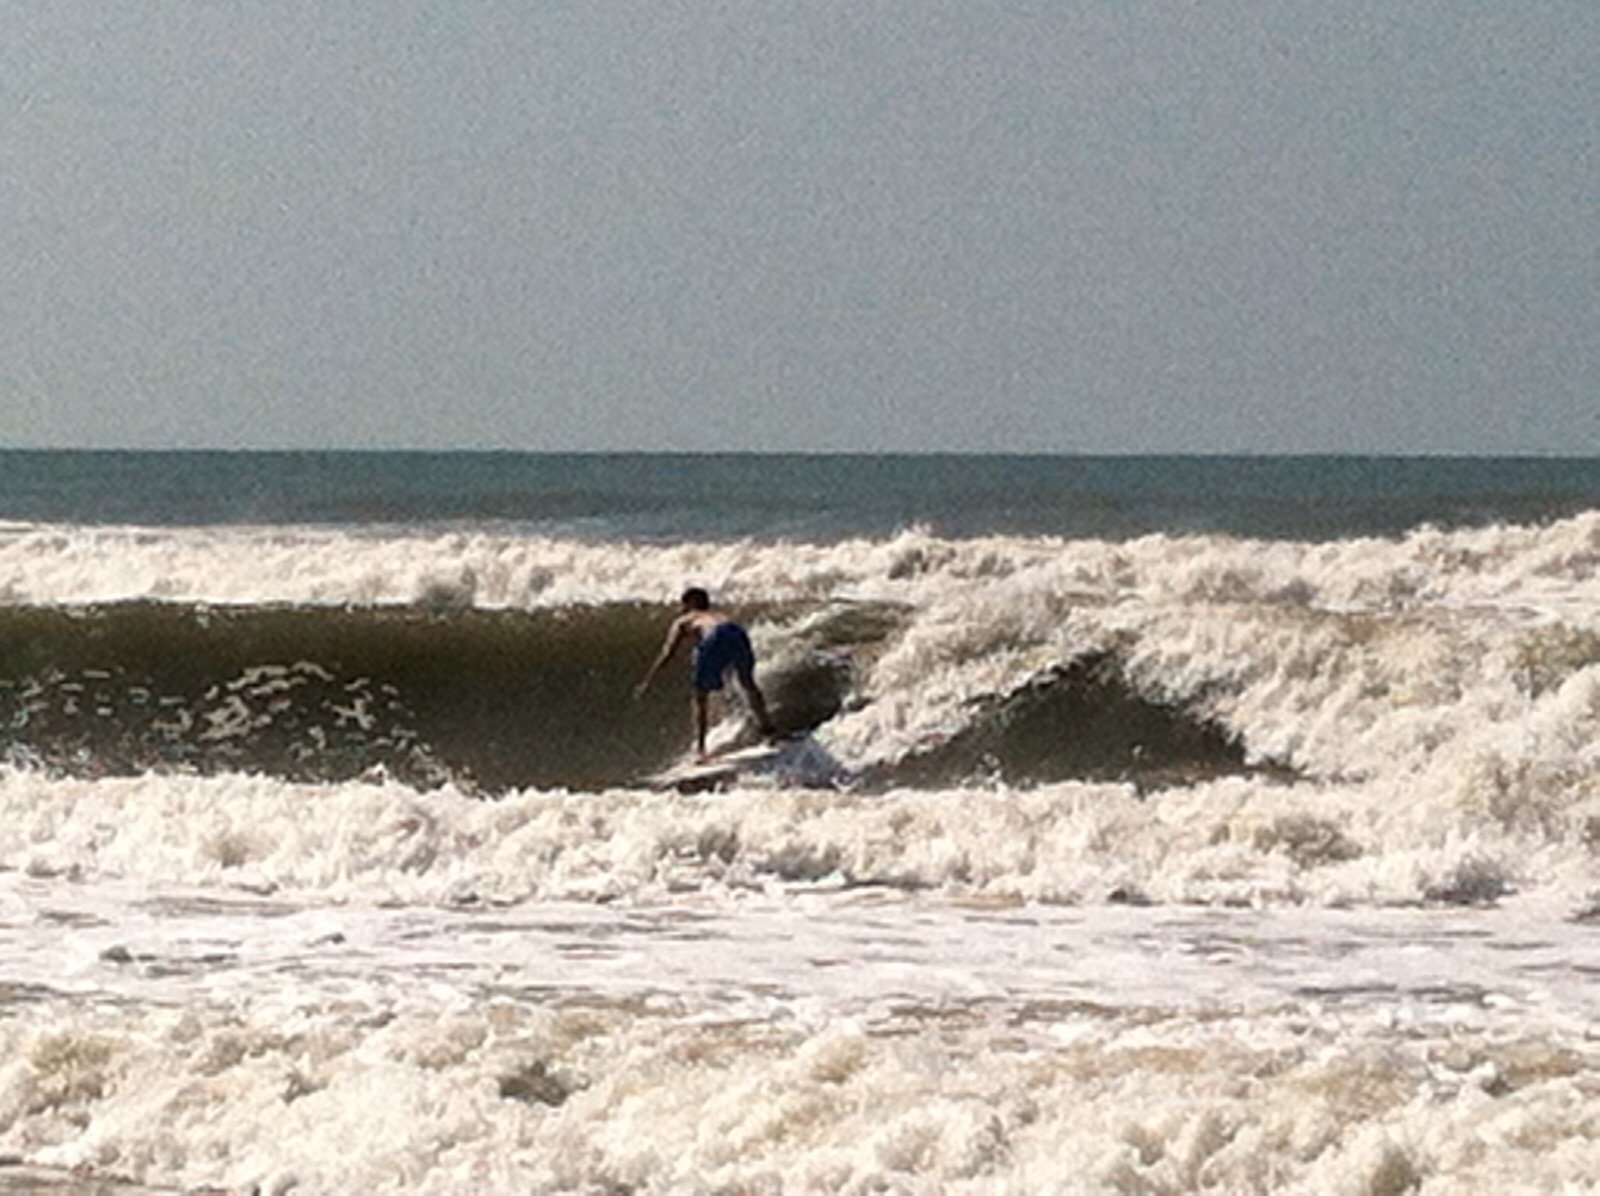 Cam_metcalf's photo of Atlantic Beach